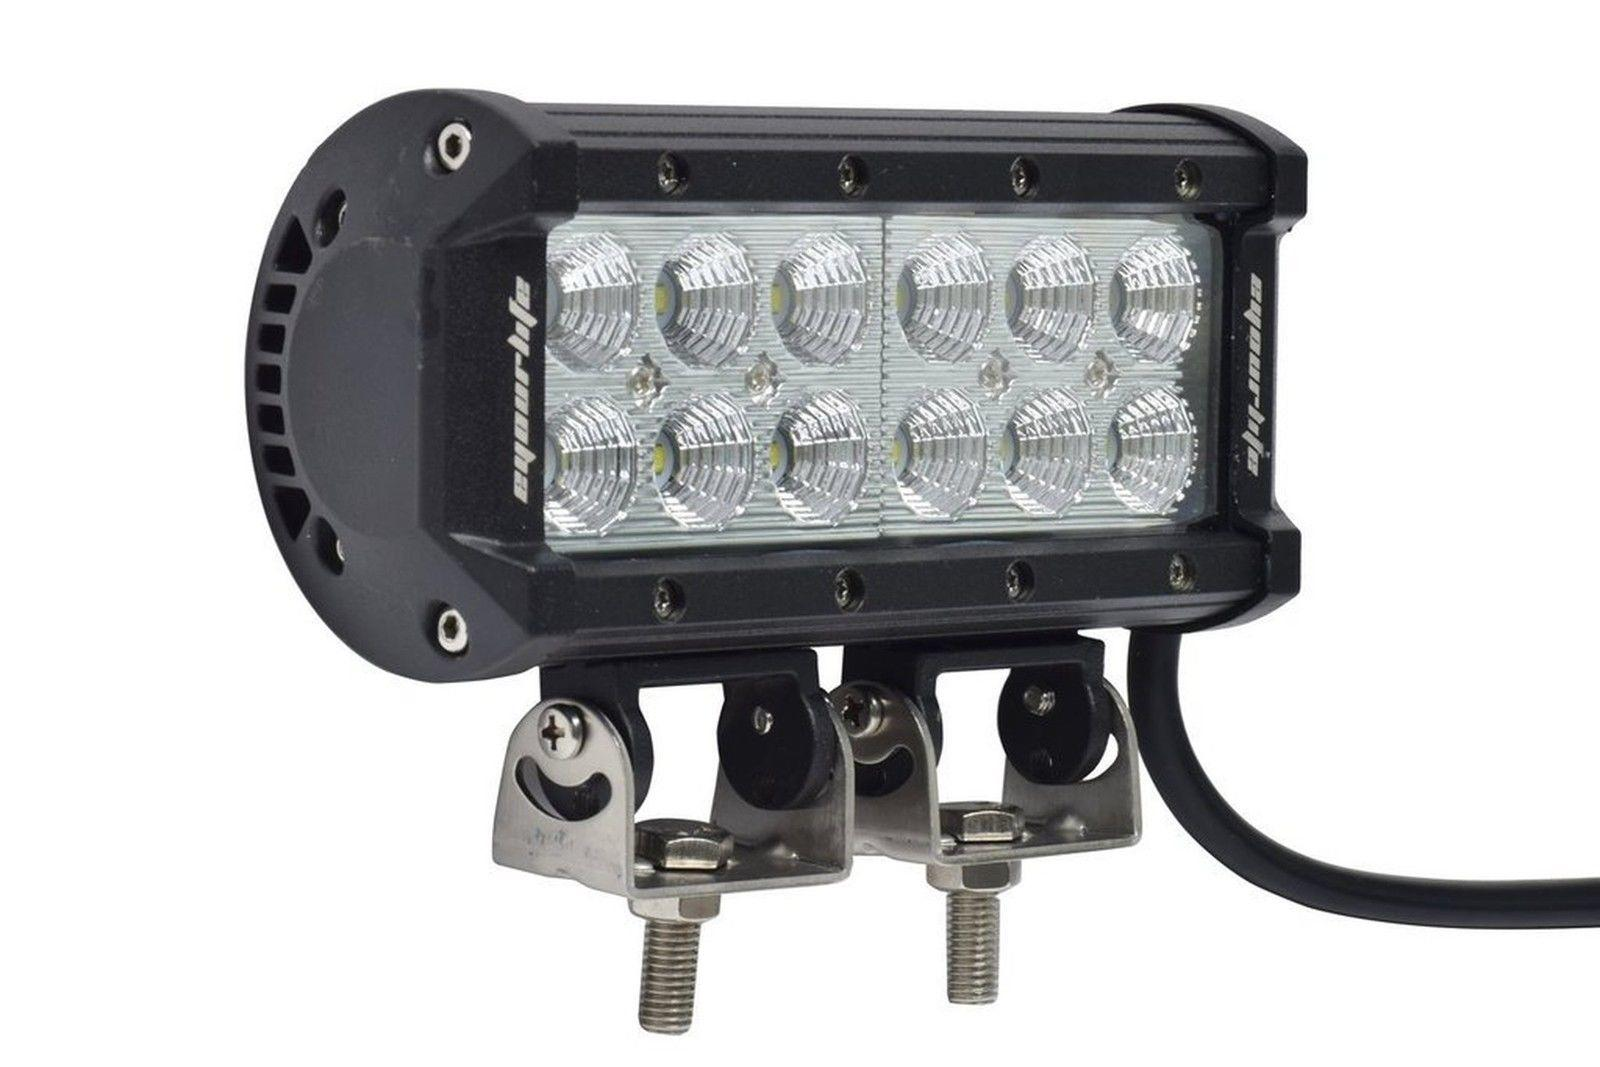 Eyourlife led light bar 7 36w flood led work light 12v driving eyourlife led light bar 7 36w flood led work light 12v driving lights aloadofball Gallery